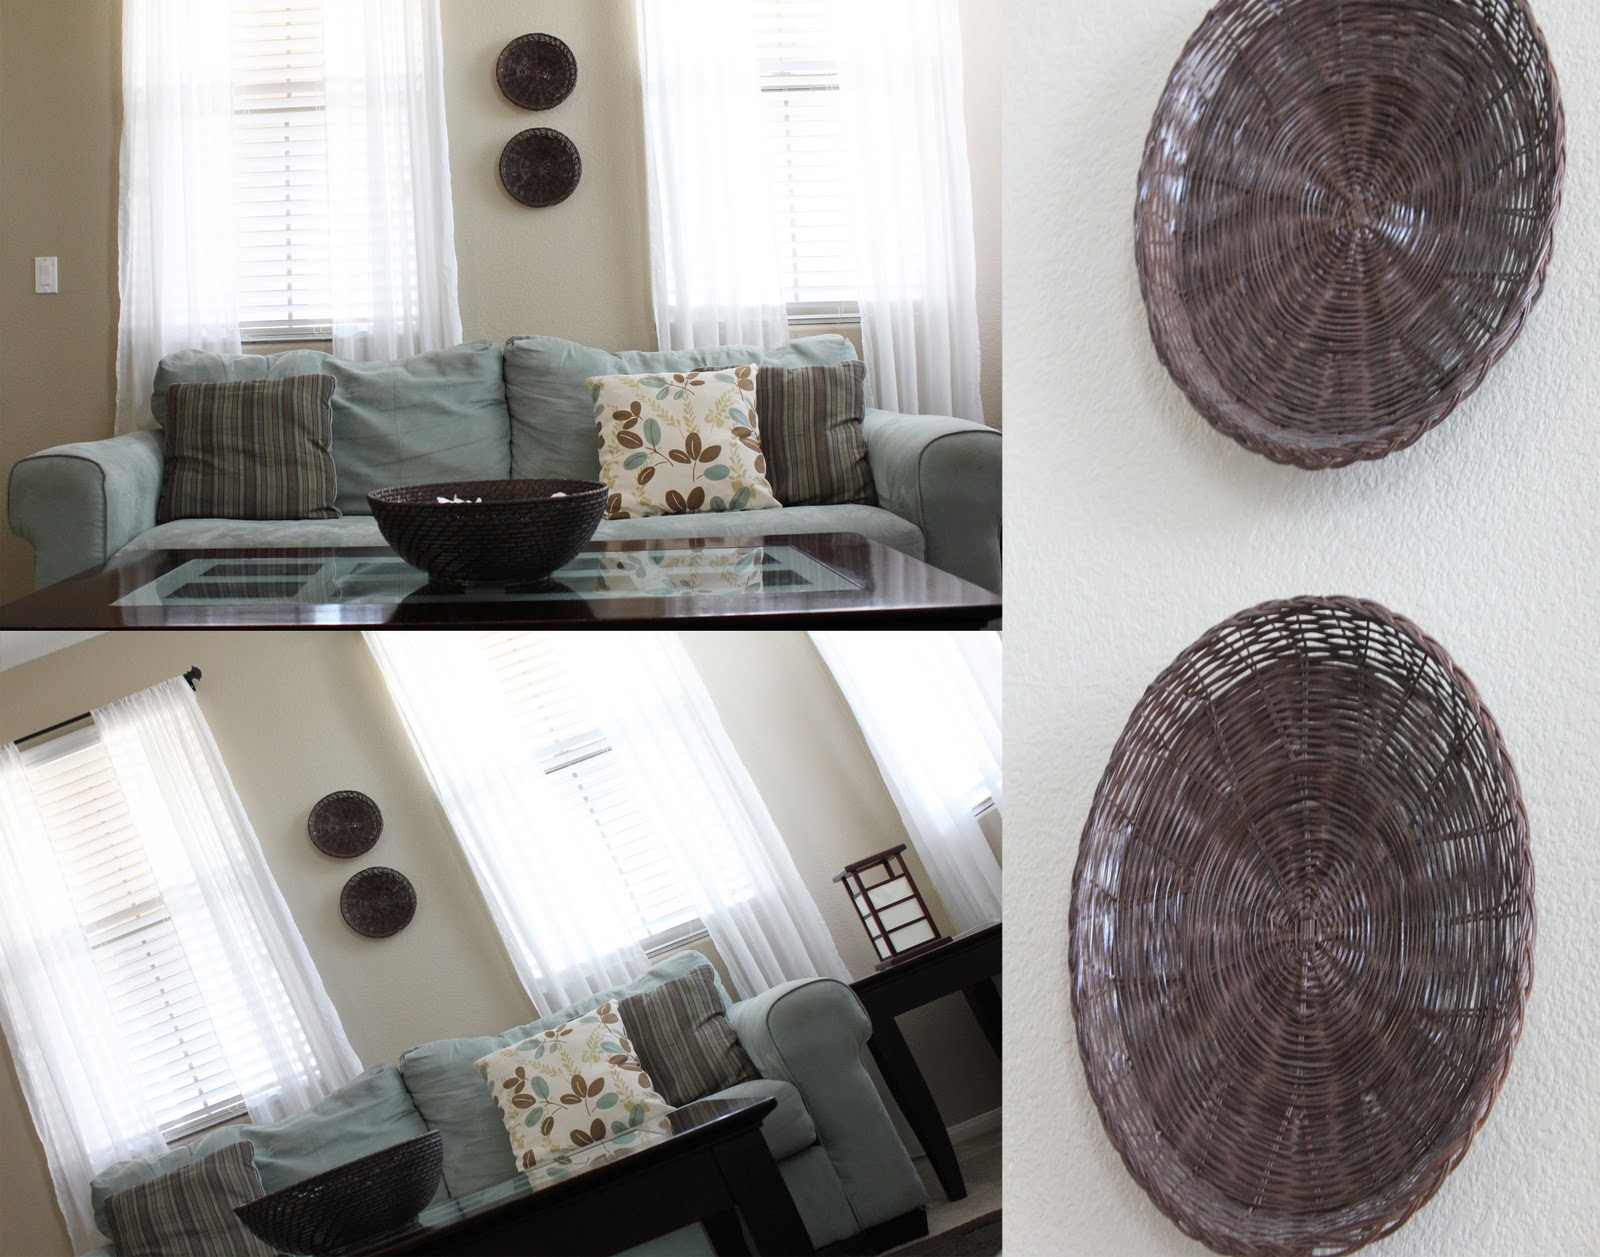 Thursday January 19 2012 & Fit Crafty Stylish and Happy: Simple home decor out of wicker ...